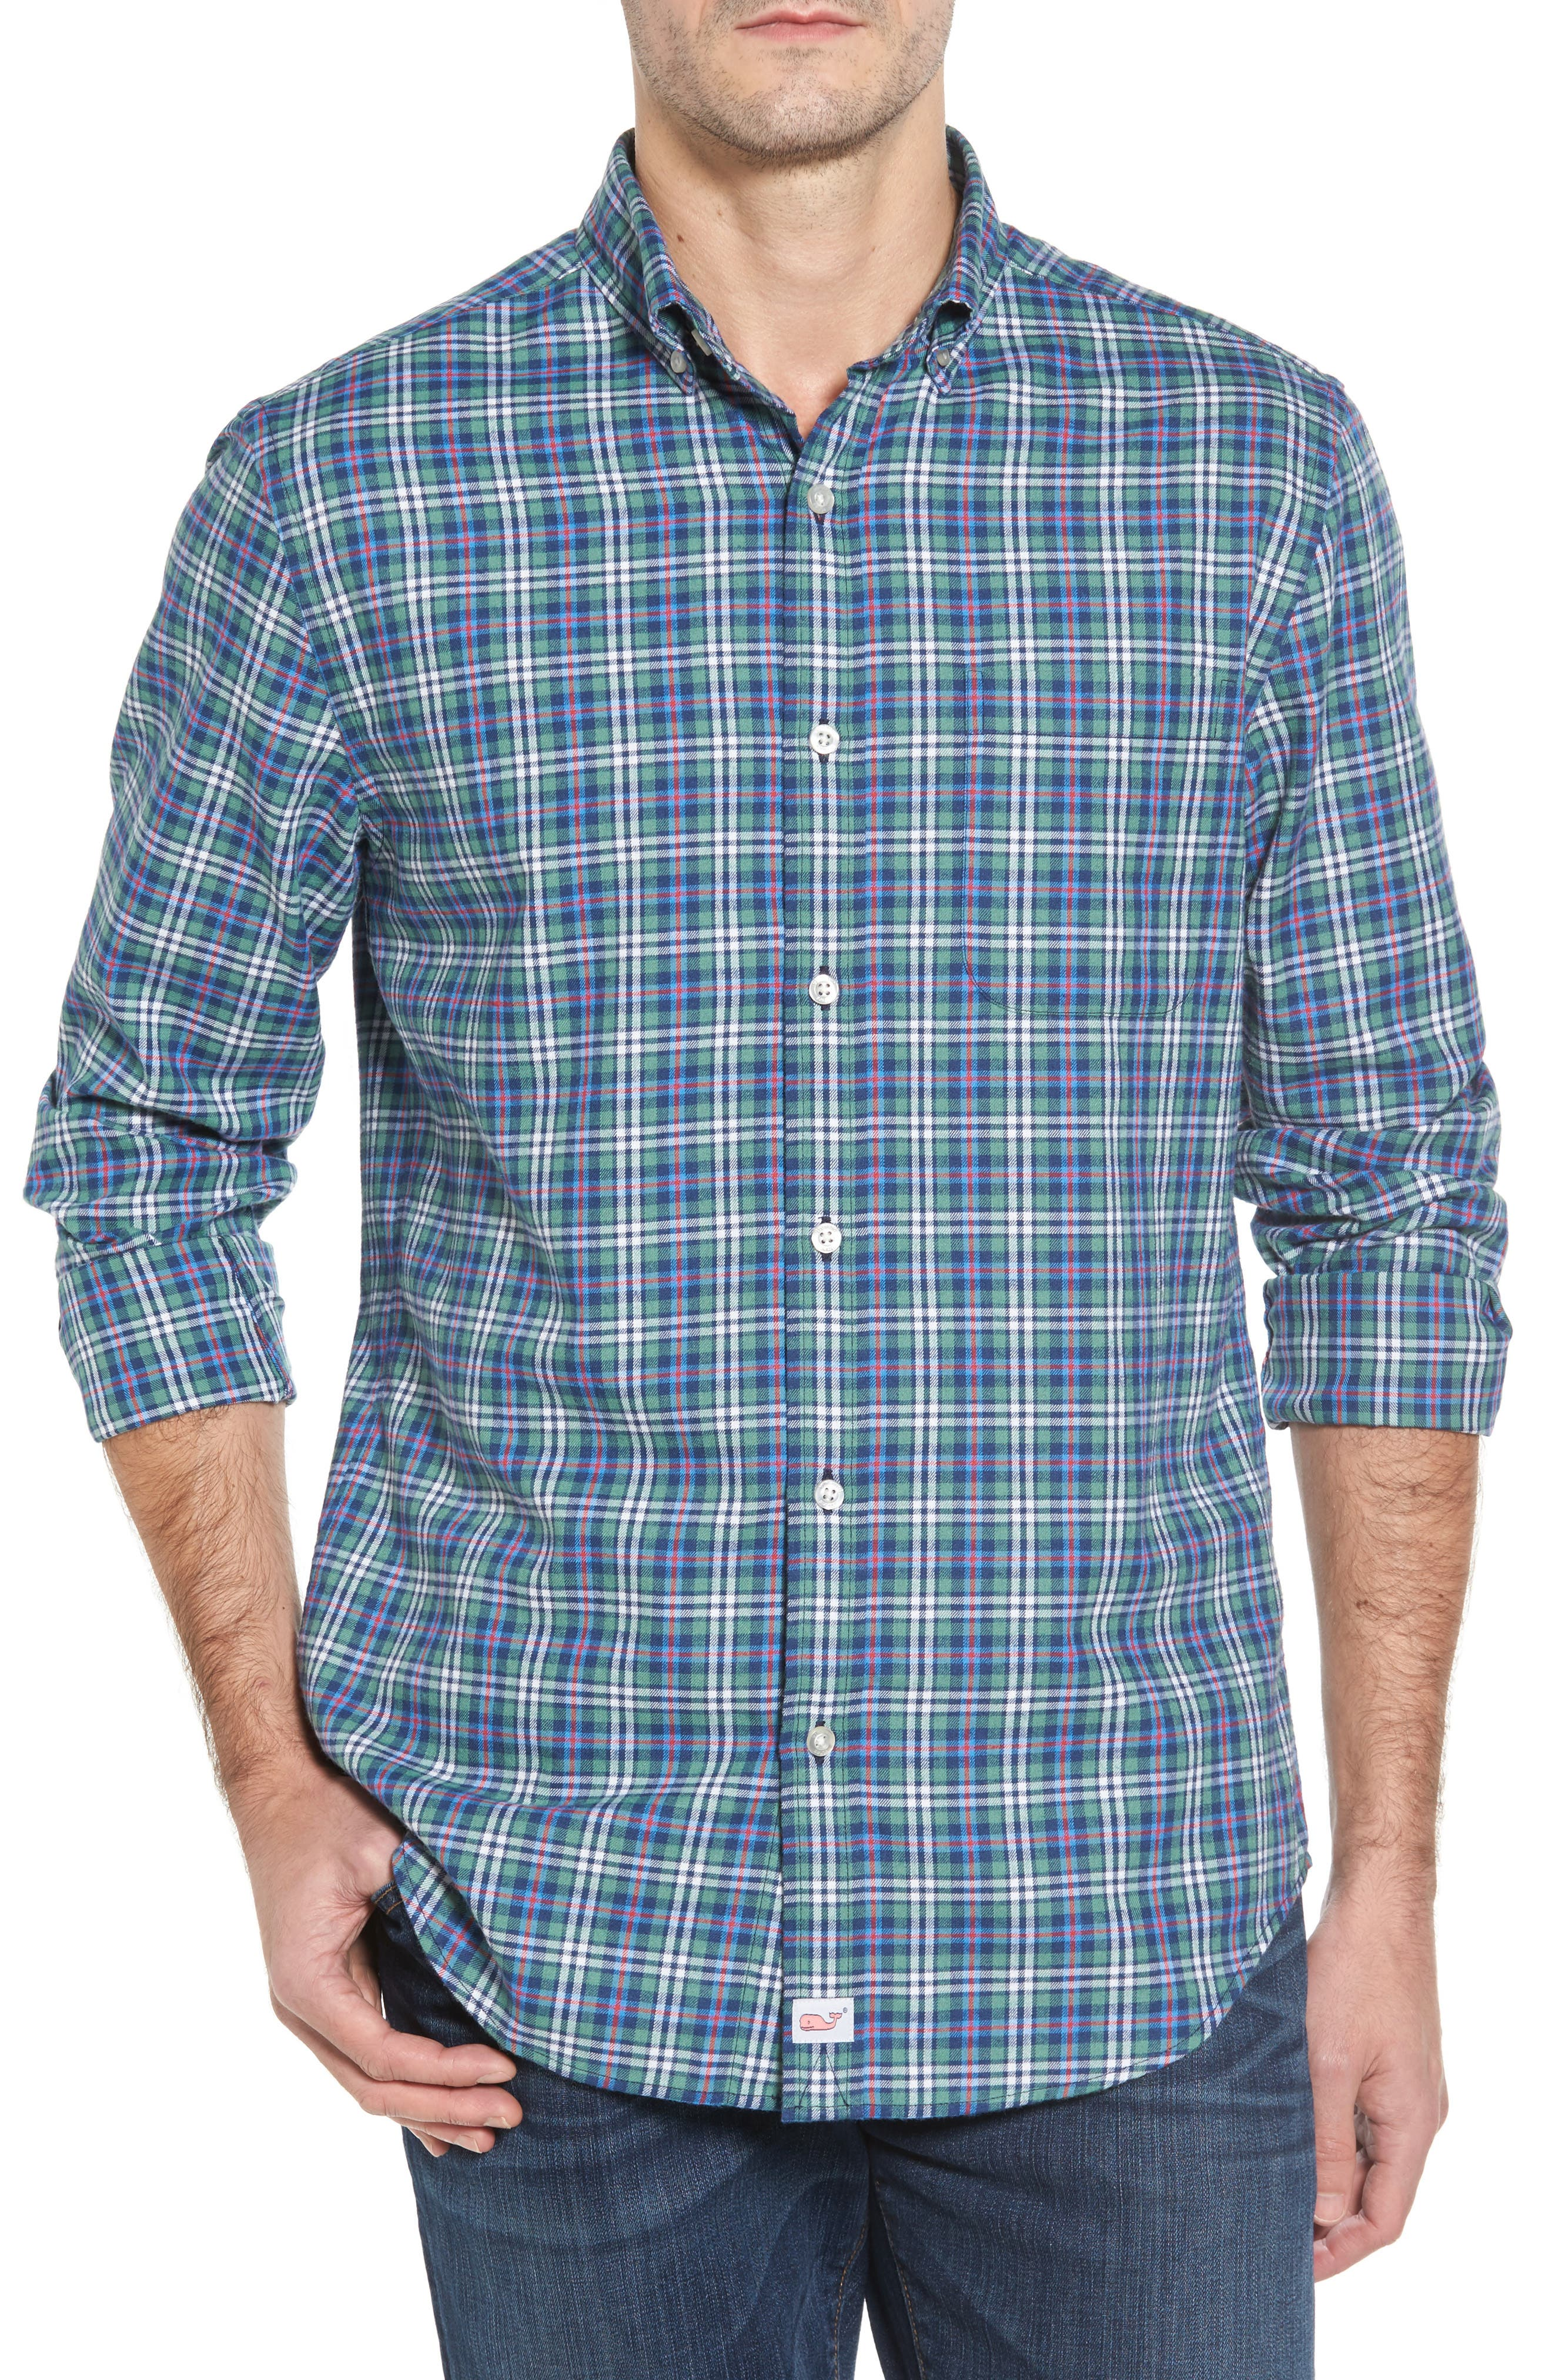 Murray Plaid Classic Fit Sport Shirt,                         Main,                         color,